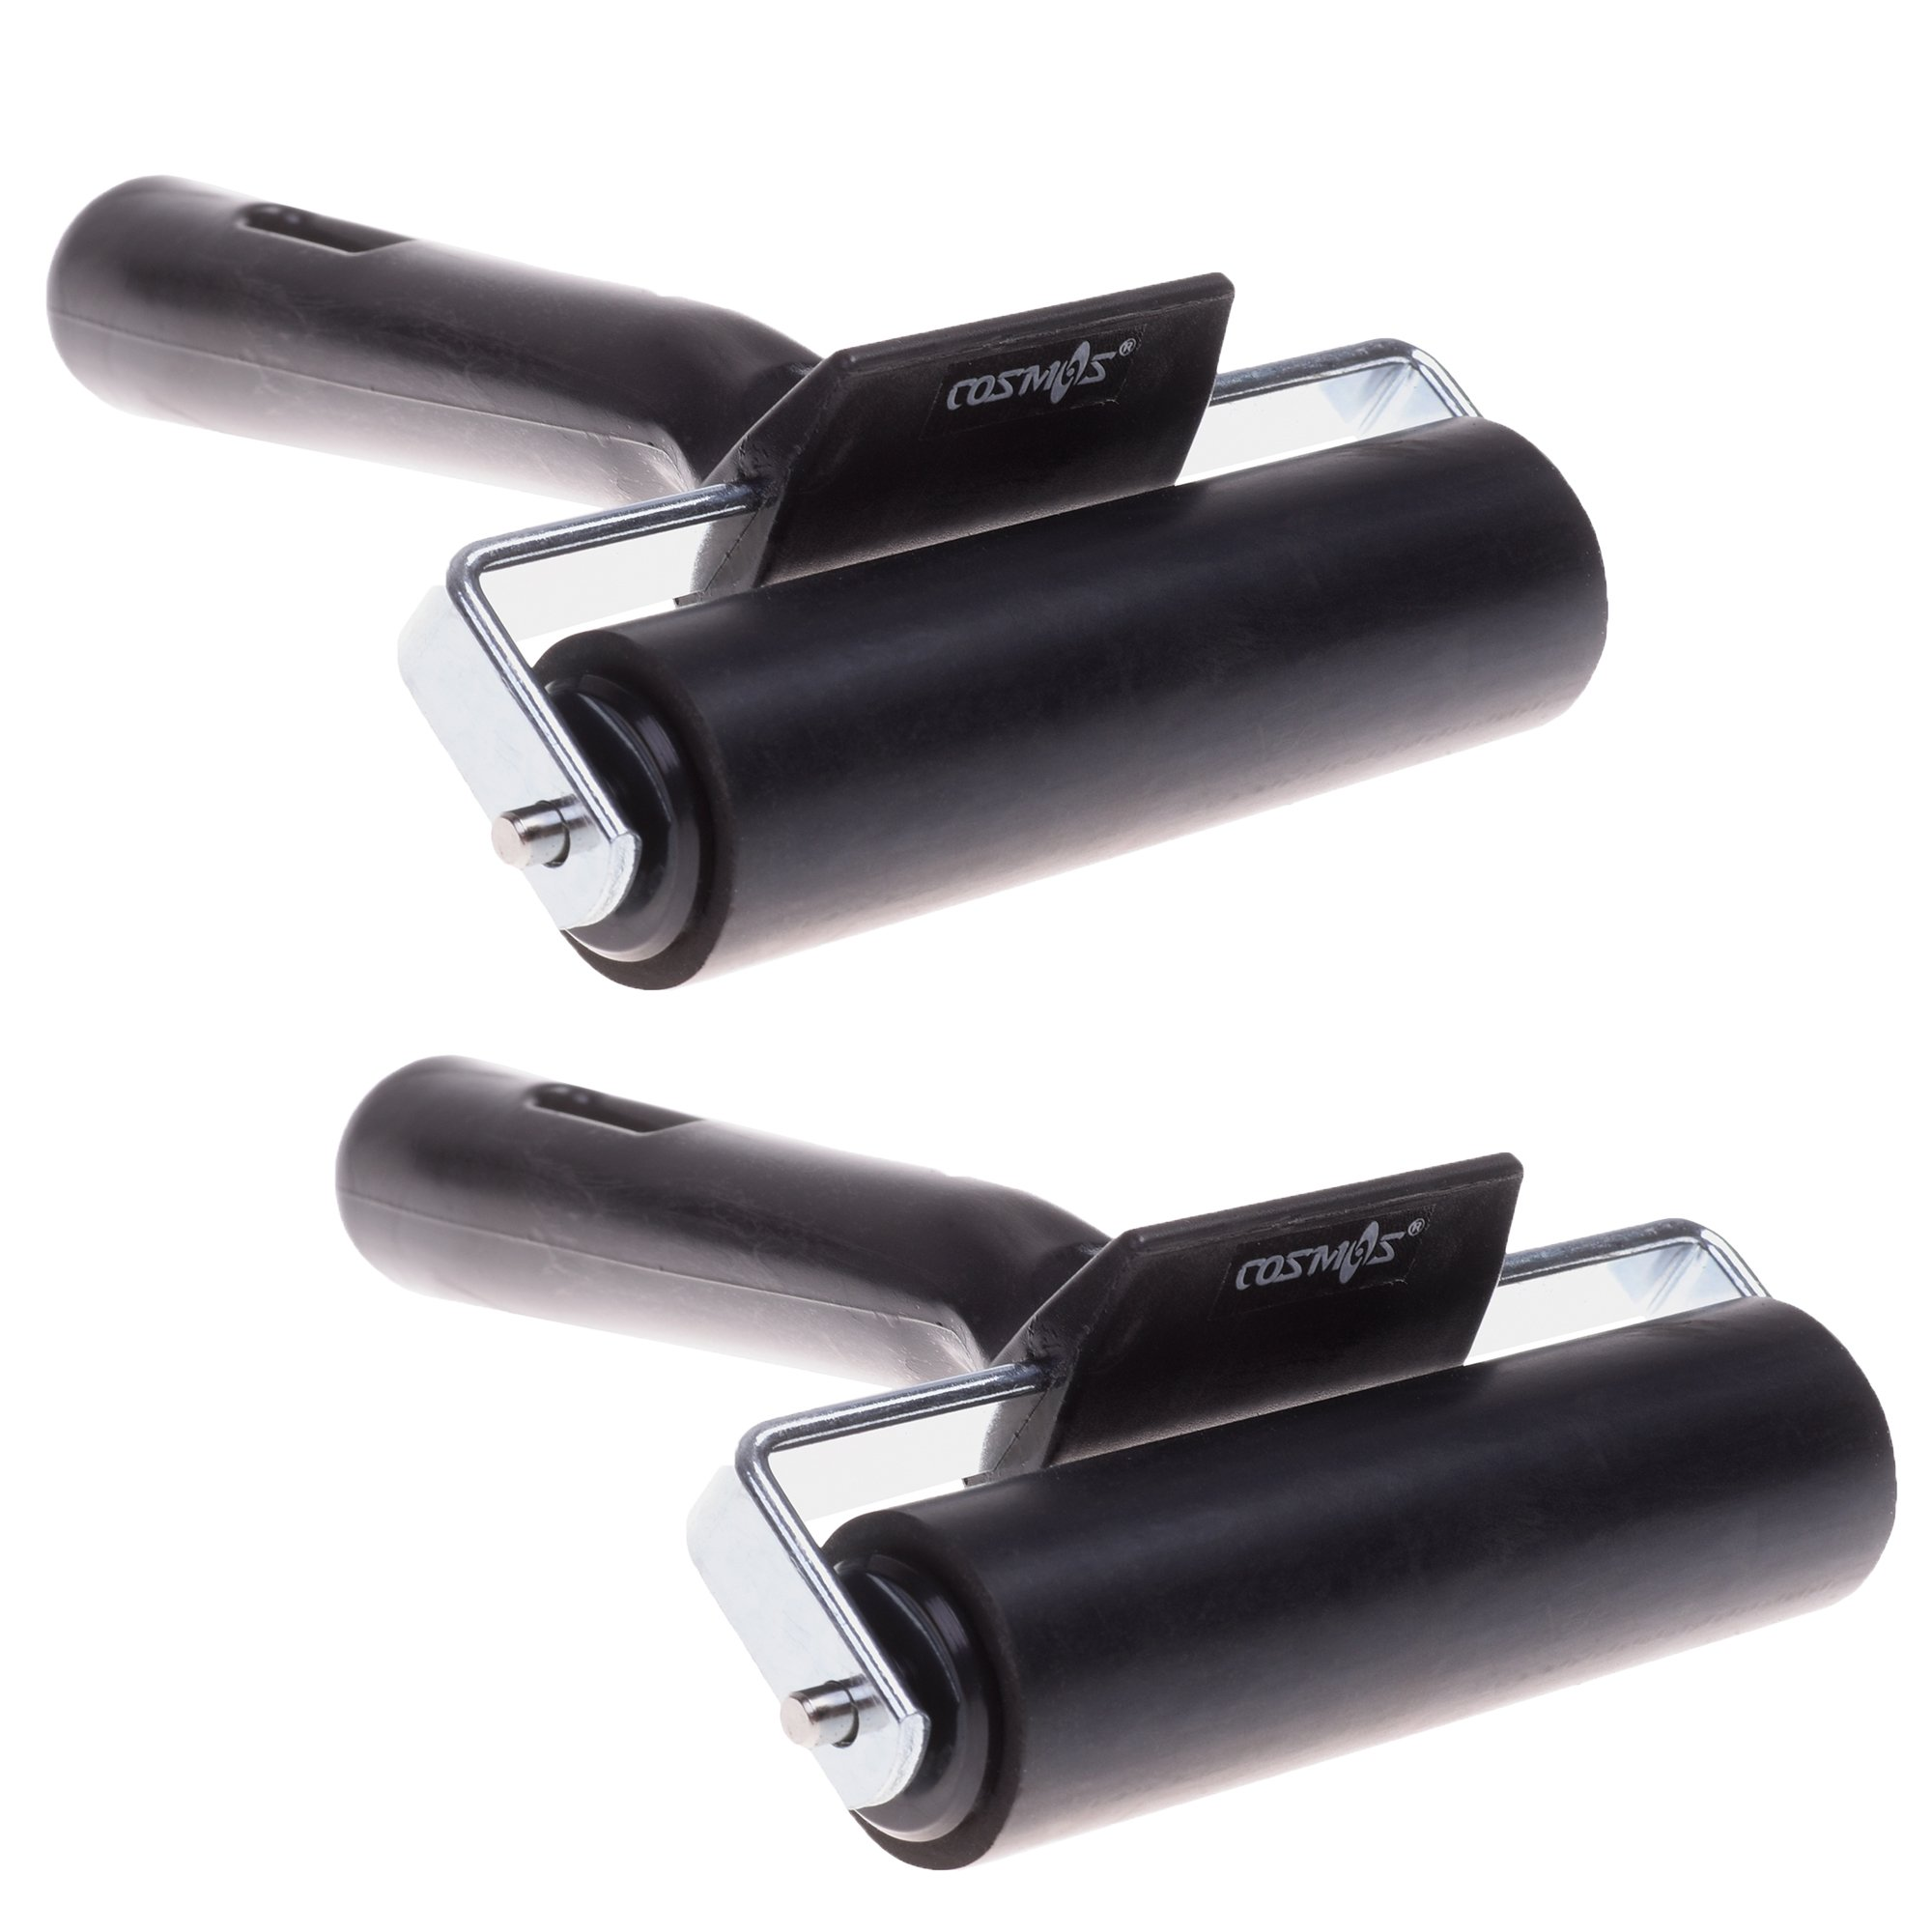 COSMOS 4 Inch Rubber Brayer Roller for Printmaking, Great for Gluing Application Also, Pack of 2 by CM